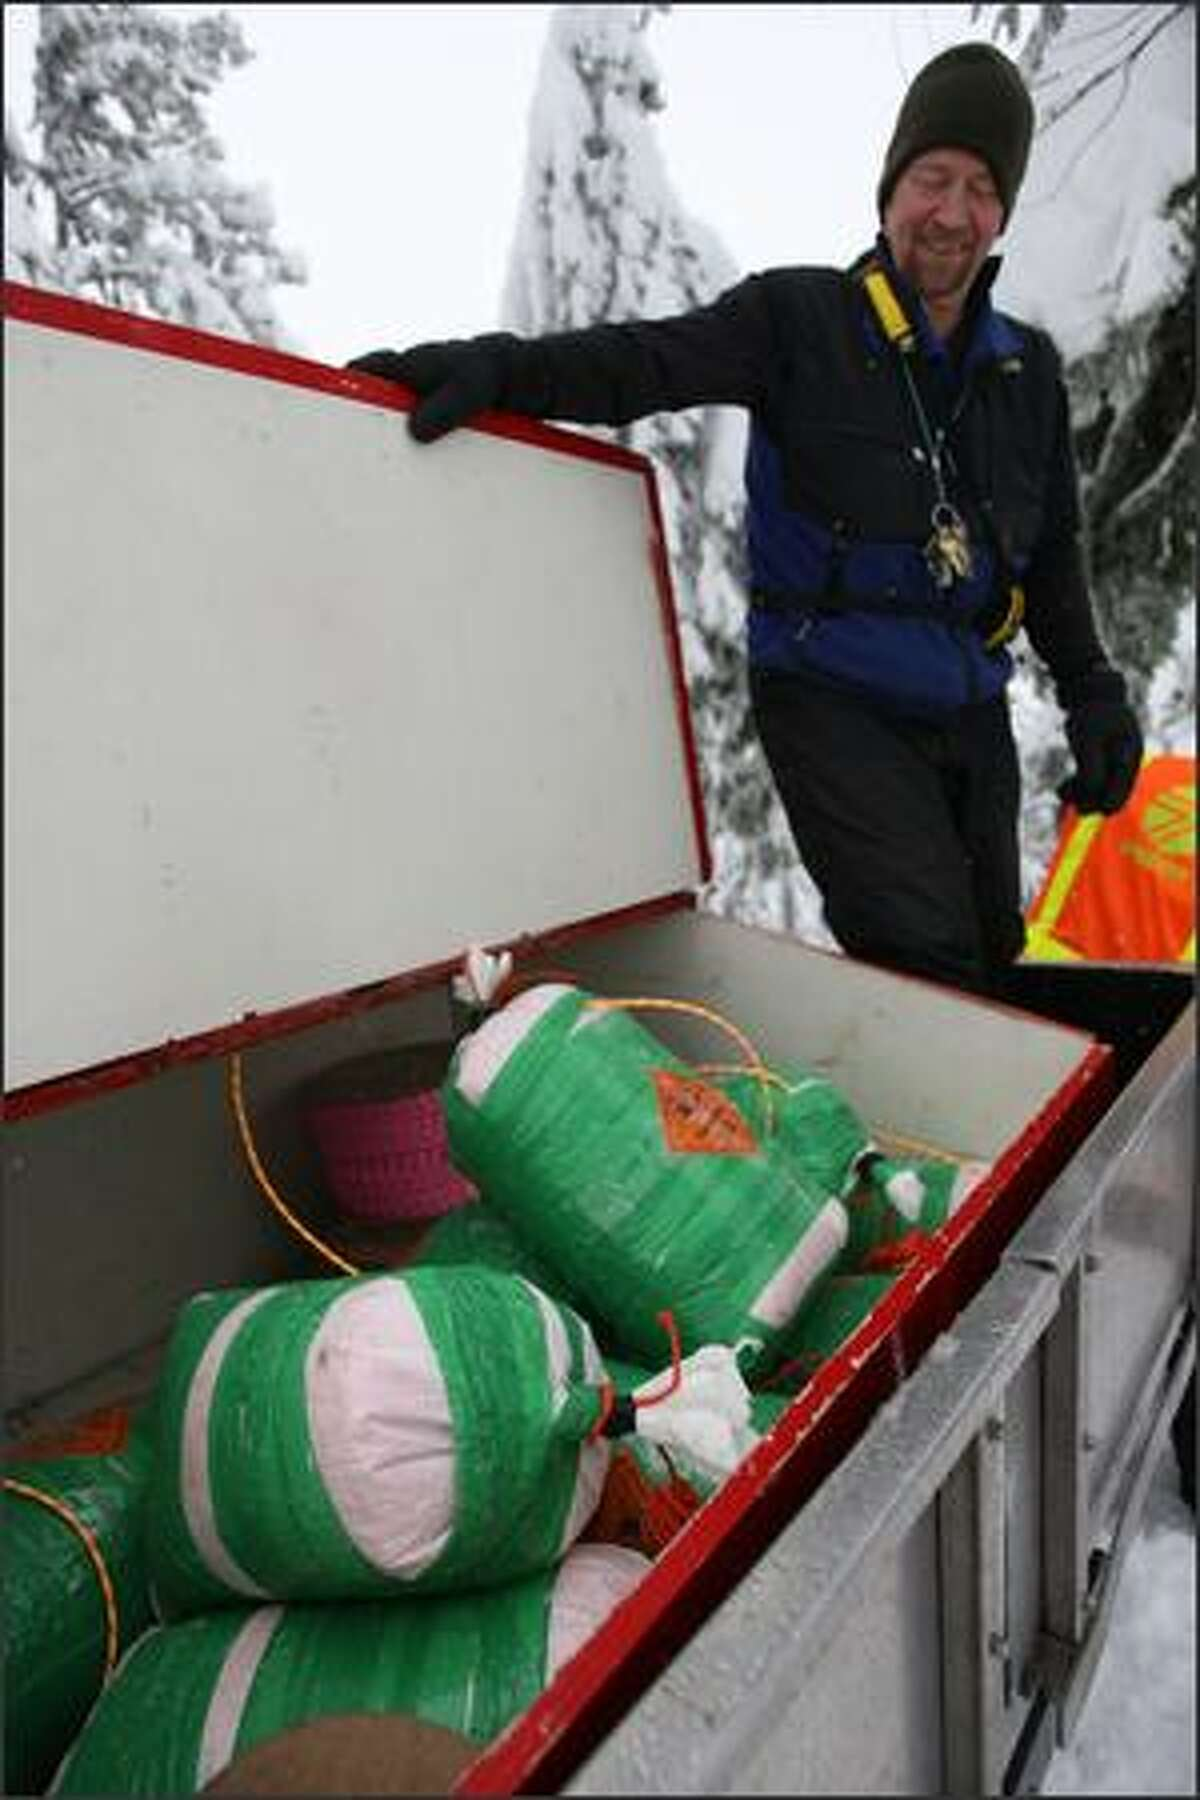 Washington Department of Transportation avalanche forecaster and controller Lee Redden looks over a load of packed explosives to be used to trigger a controlled avalanche at Snoqualmie Pass on Monday, Jan. 5, 2009.